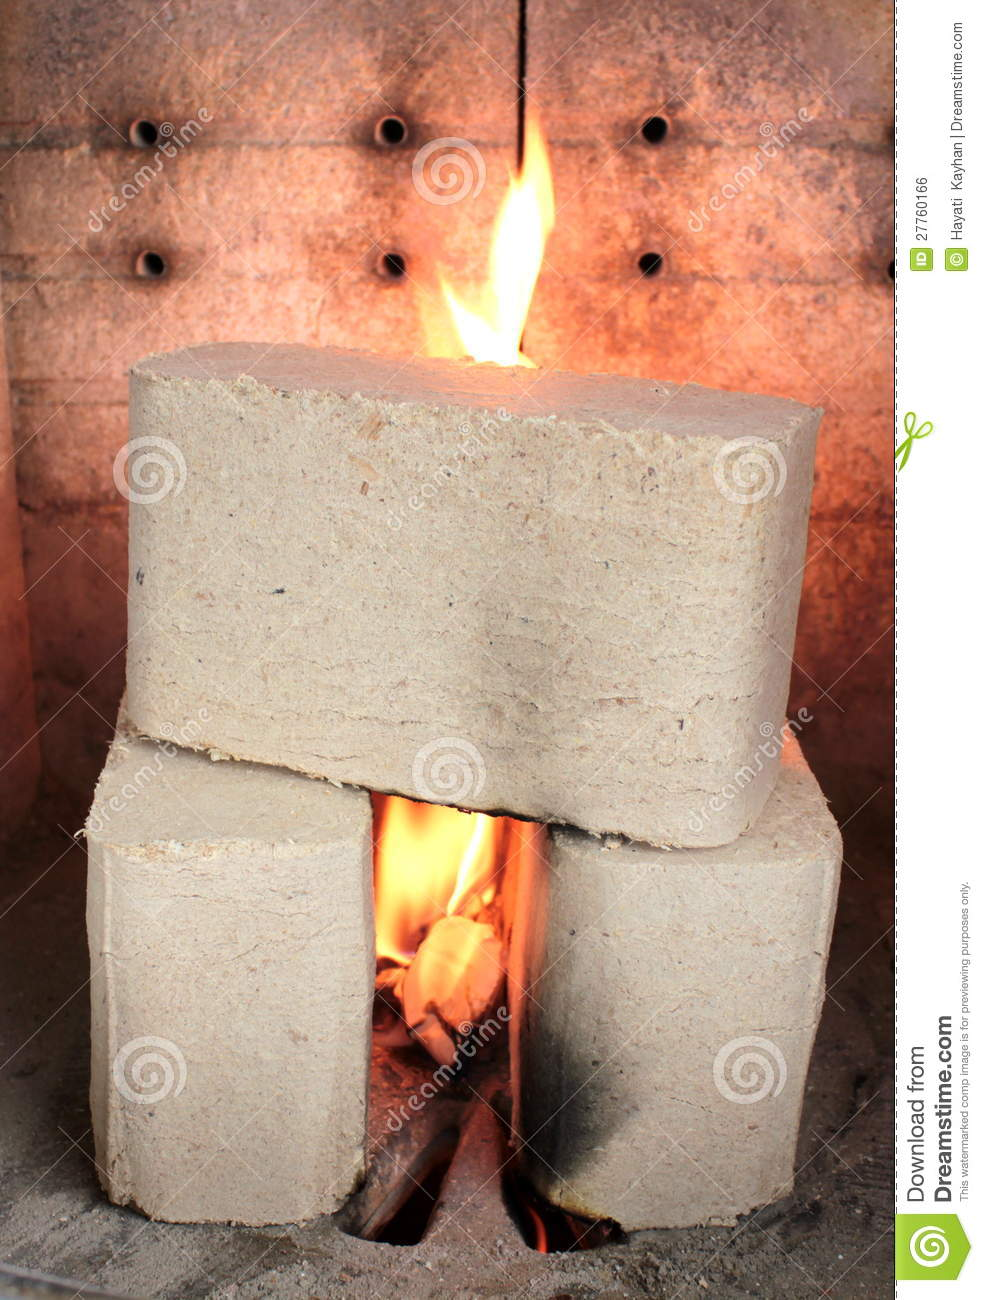 Wood briquettes burning in stove royalty free stock image